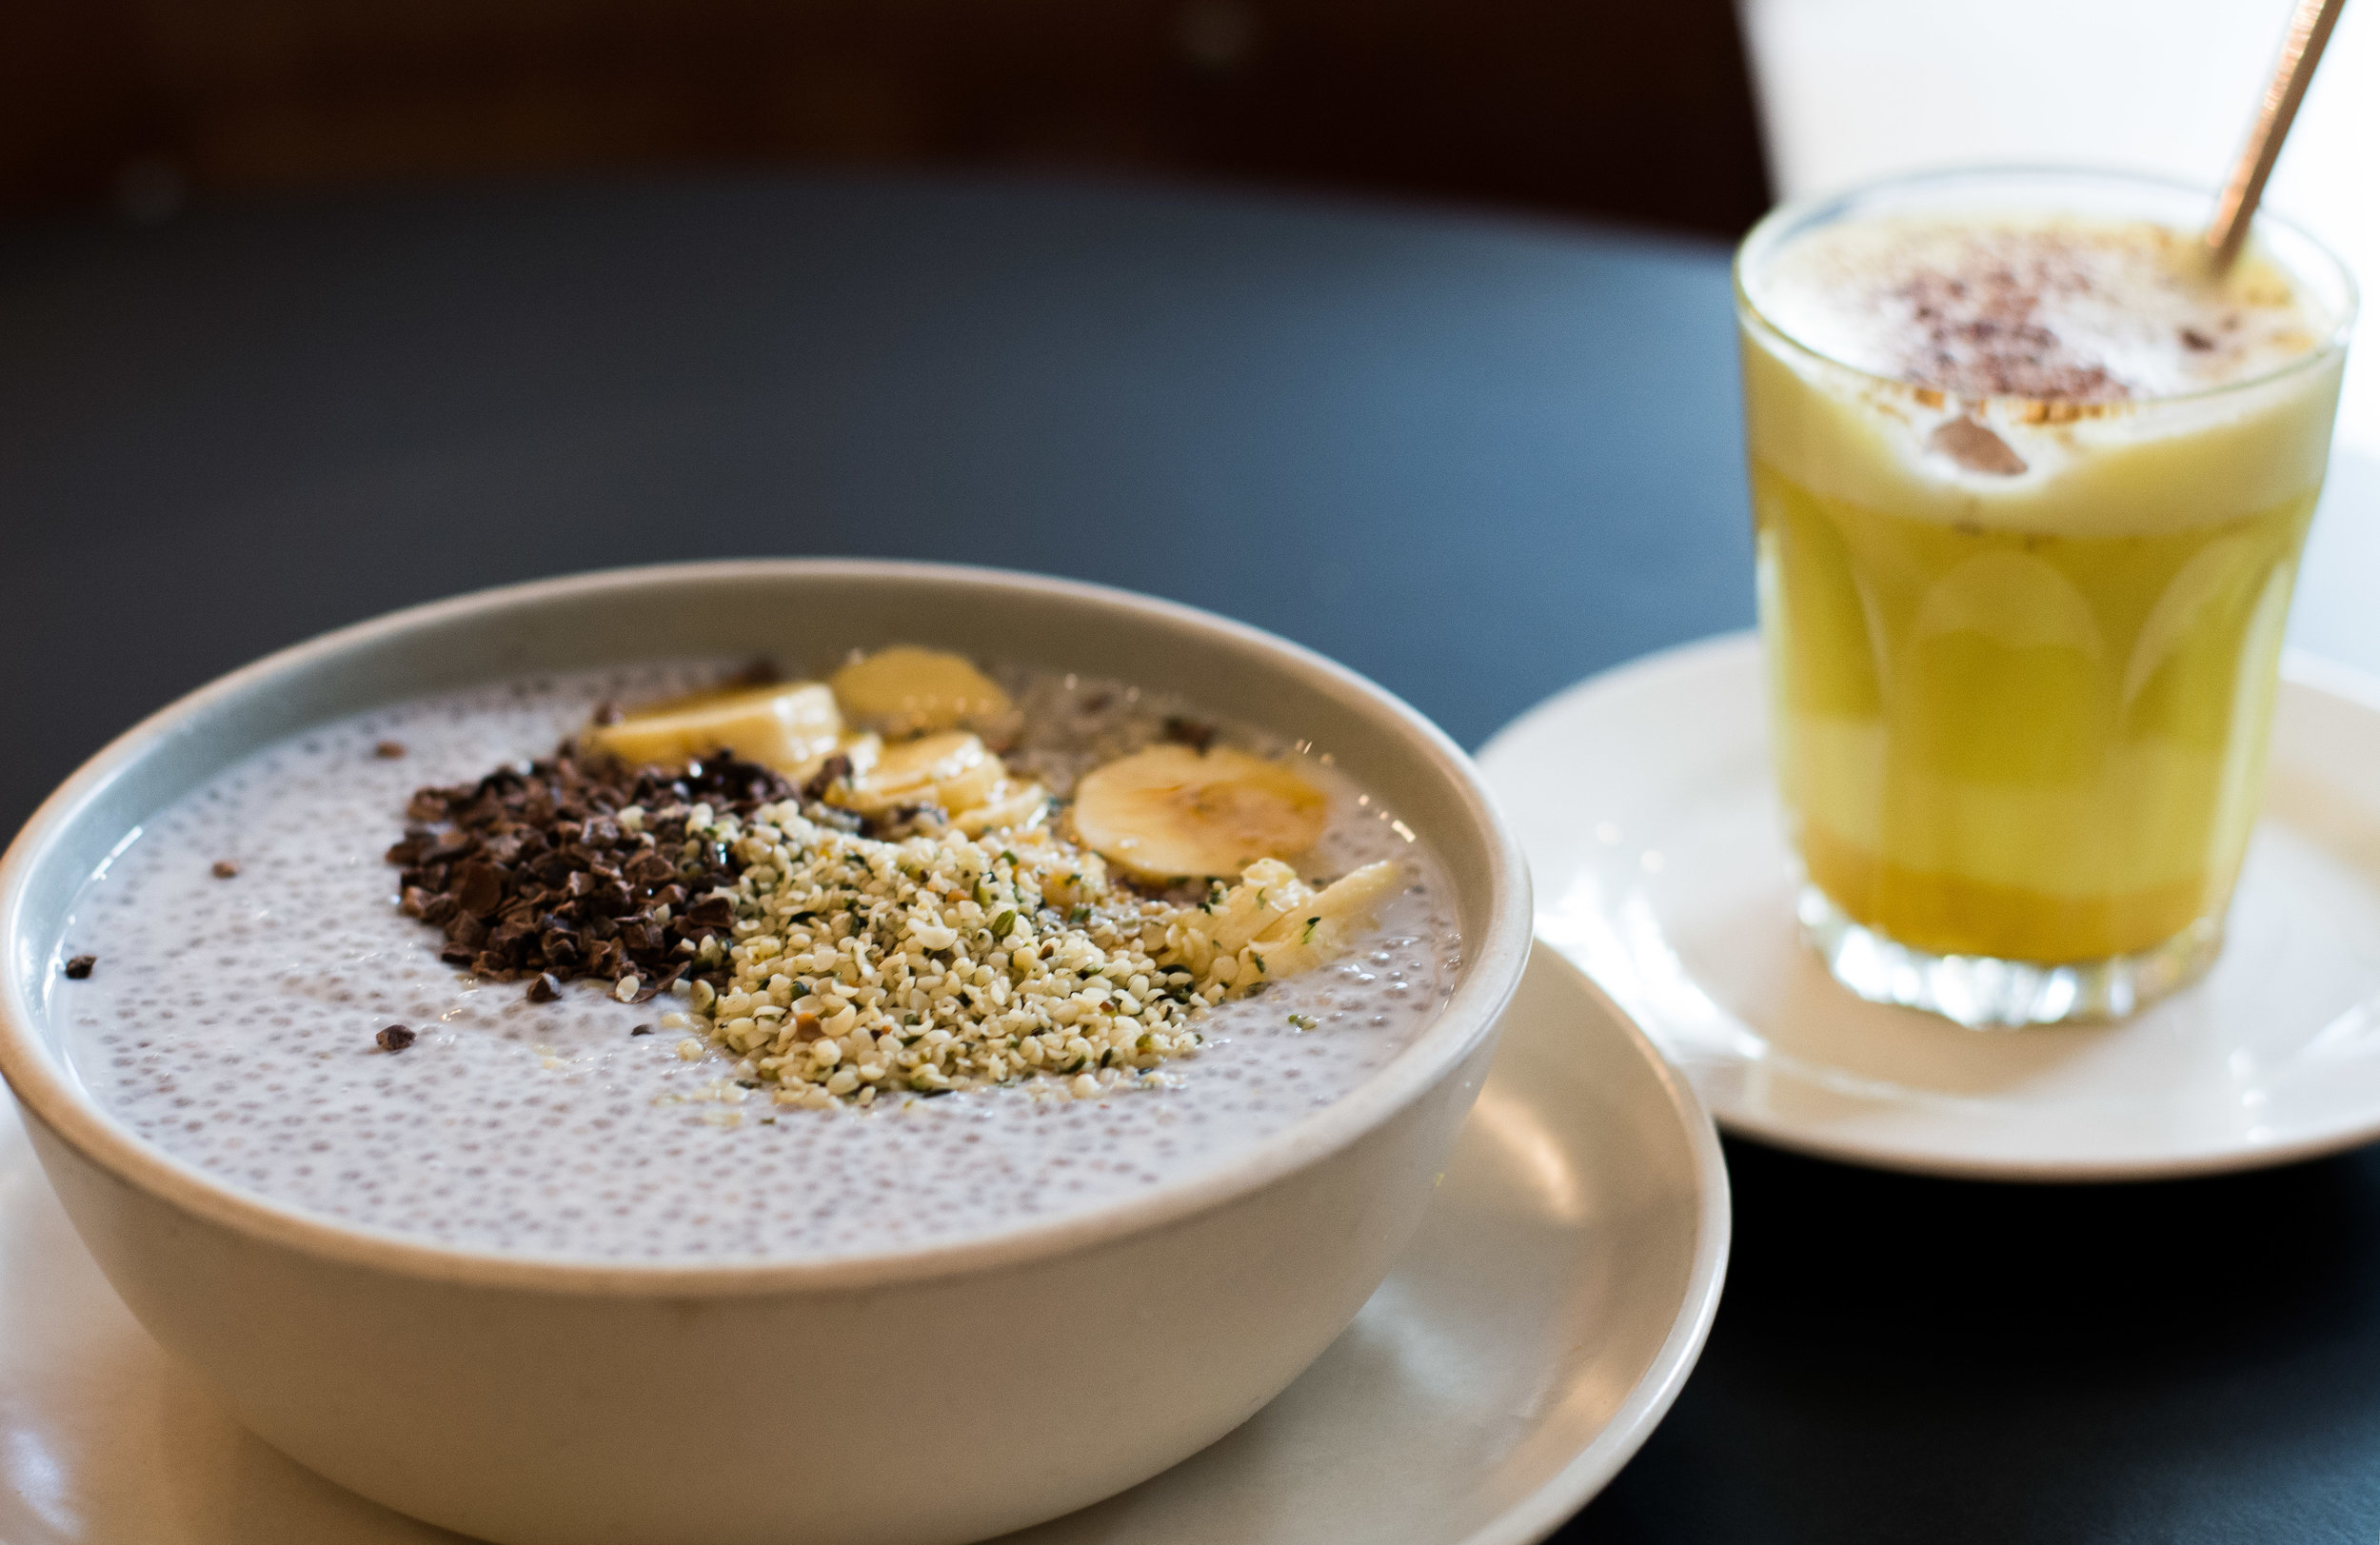 Chia pudding and turmeric latte at Federal Café, Barcelona. Photo © Barcelona Food Experience.